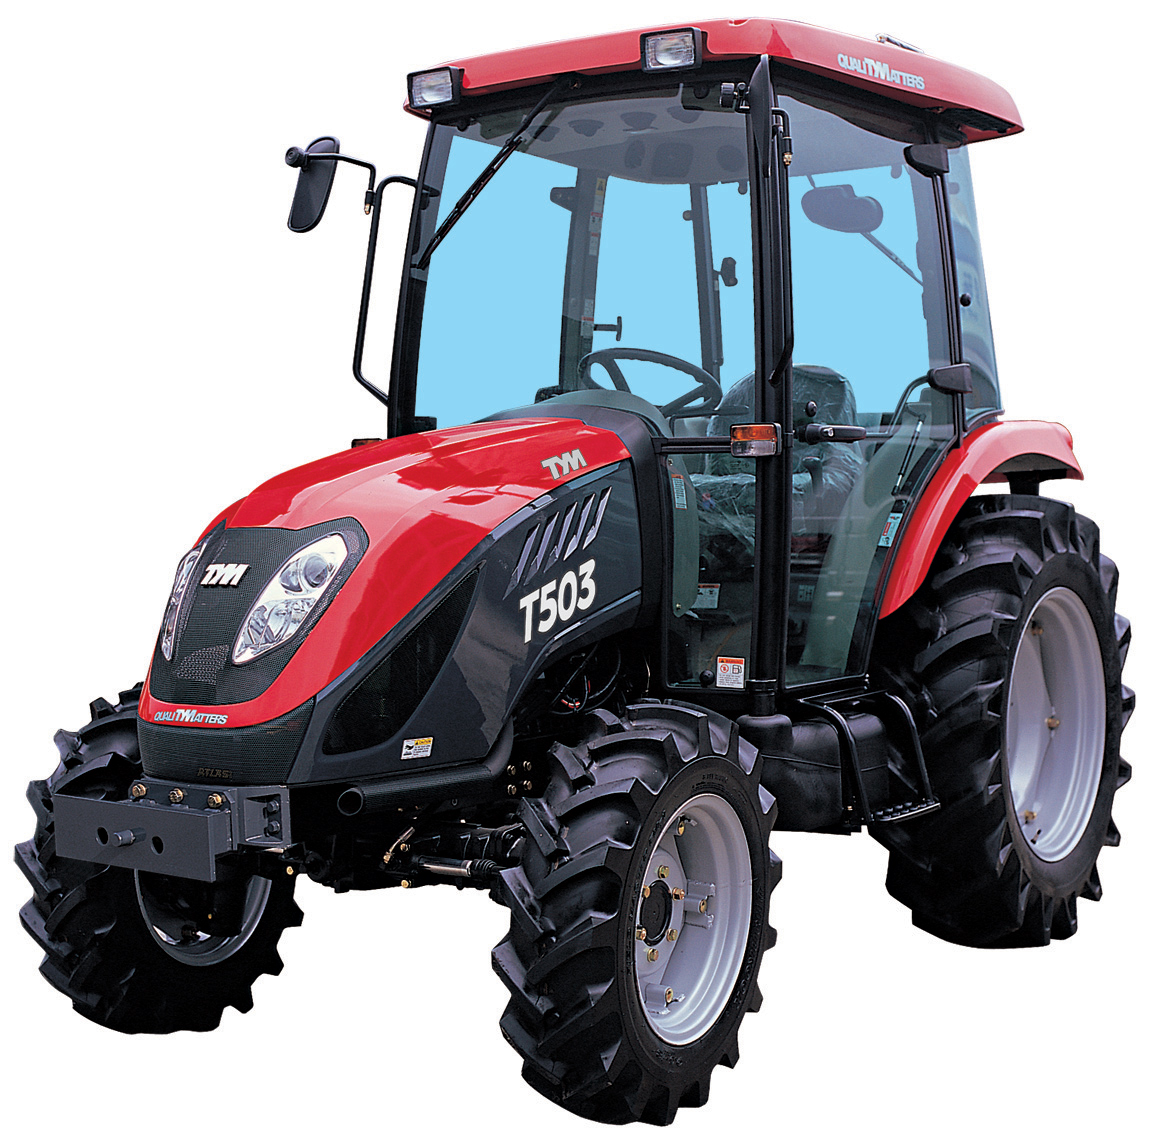 T503 compact tractor with agricultural tires and a heated air ...